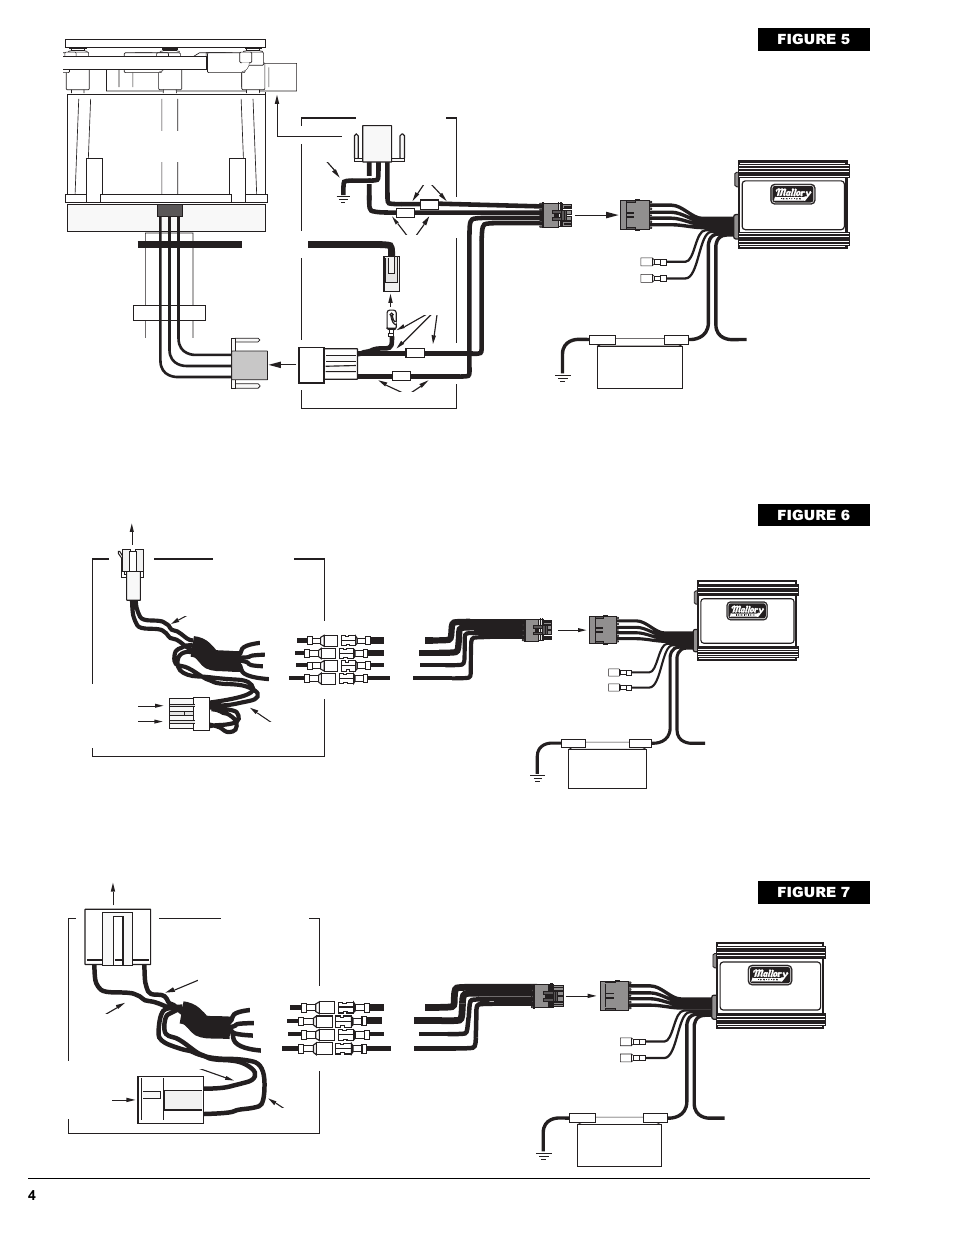 Ih Electronic Ignition Wiring Diagram Not Lossing Pertronix Hei Est Distributor Chrysler Switch